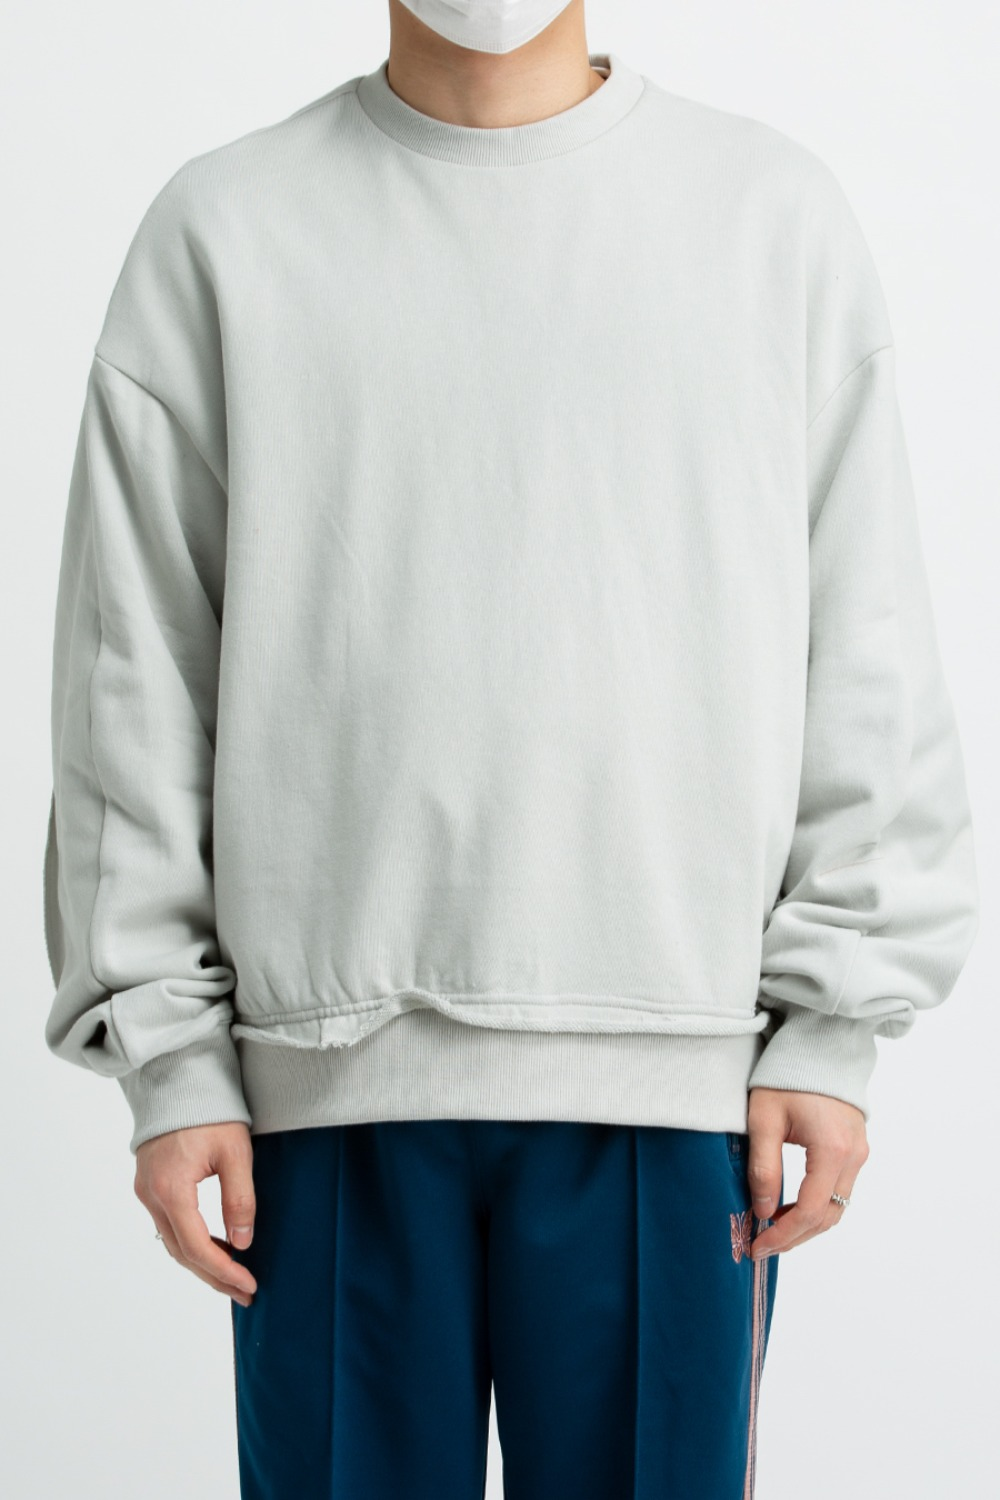 RAW EDGED CUT SWEATSHIRT LIGHT GREY